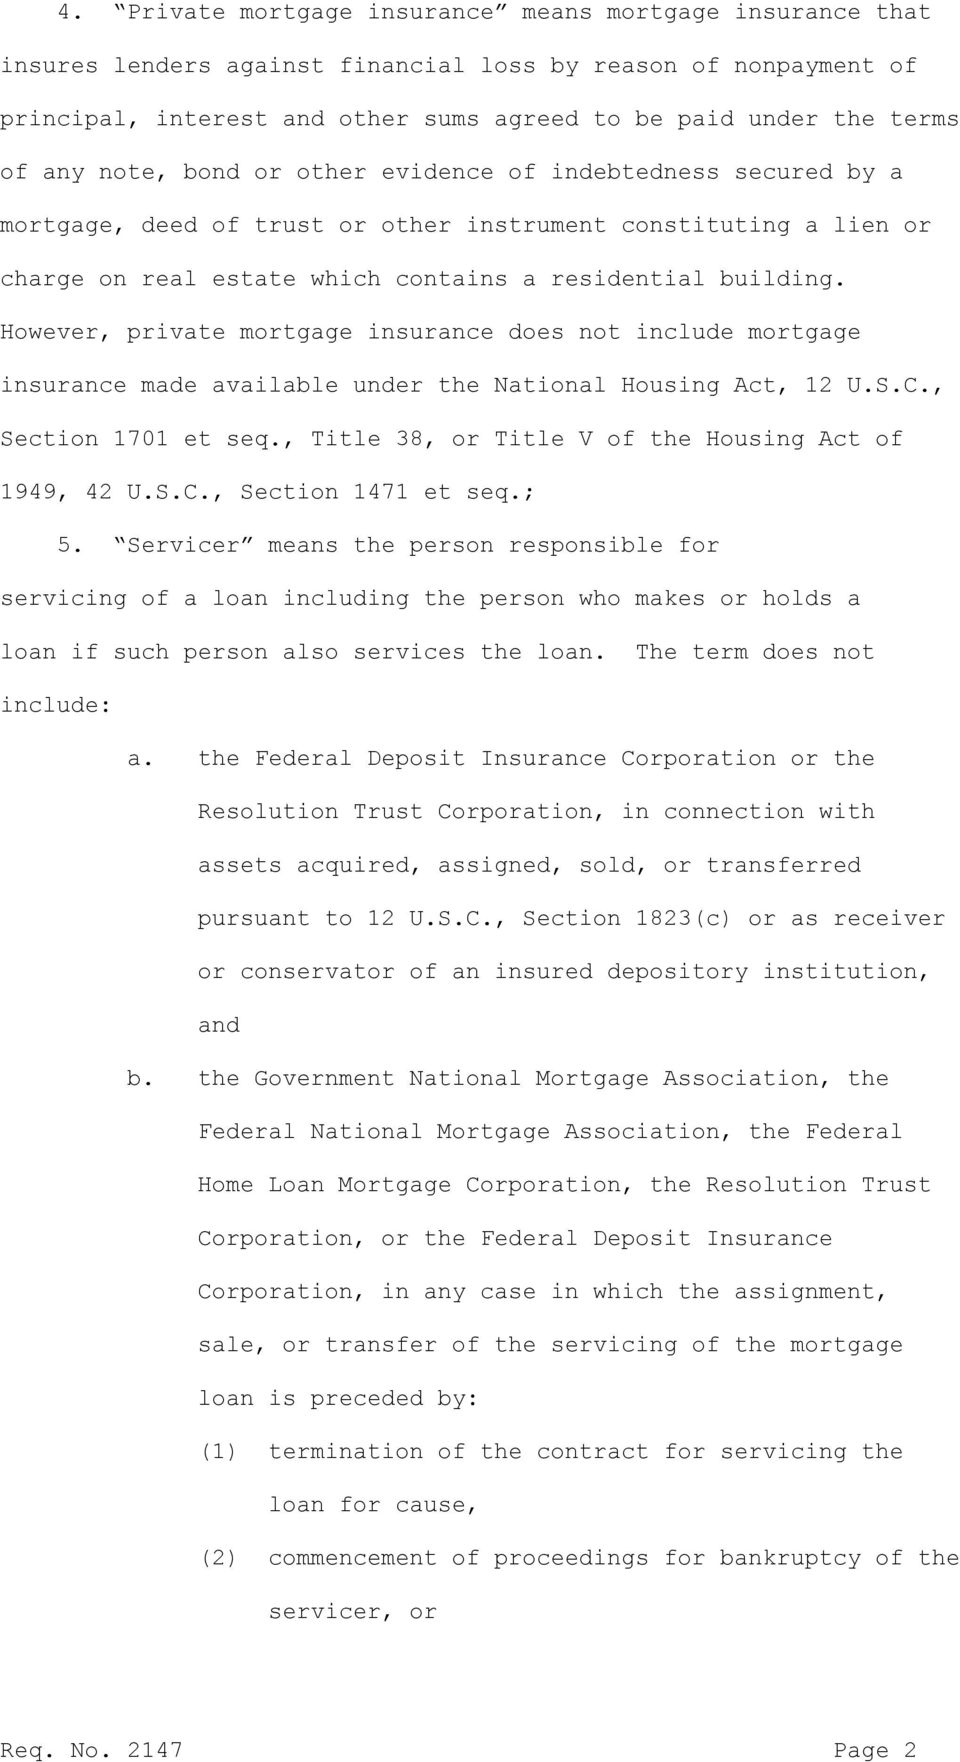 However, private mortgage insurance does not include mortgage insurance made available under the National Housing Act, 12 U.S.C., Section 1701 et seq.